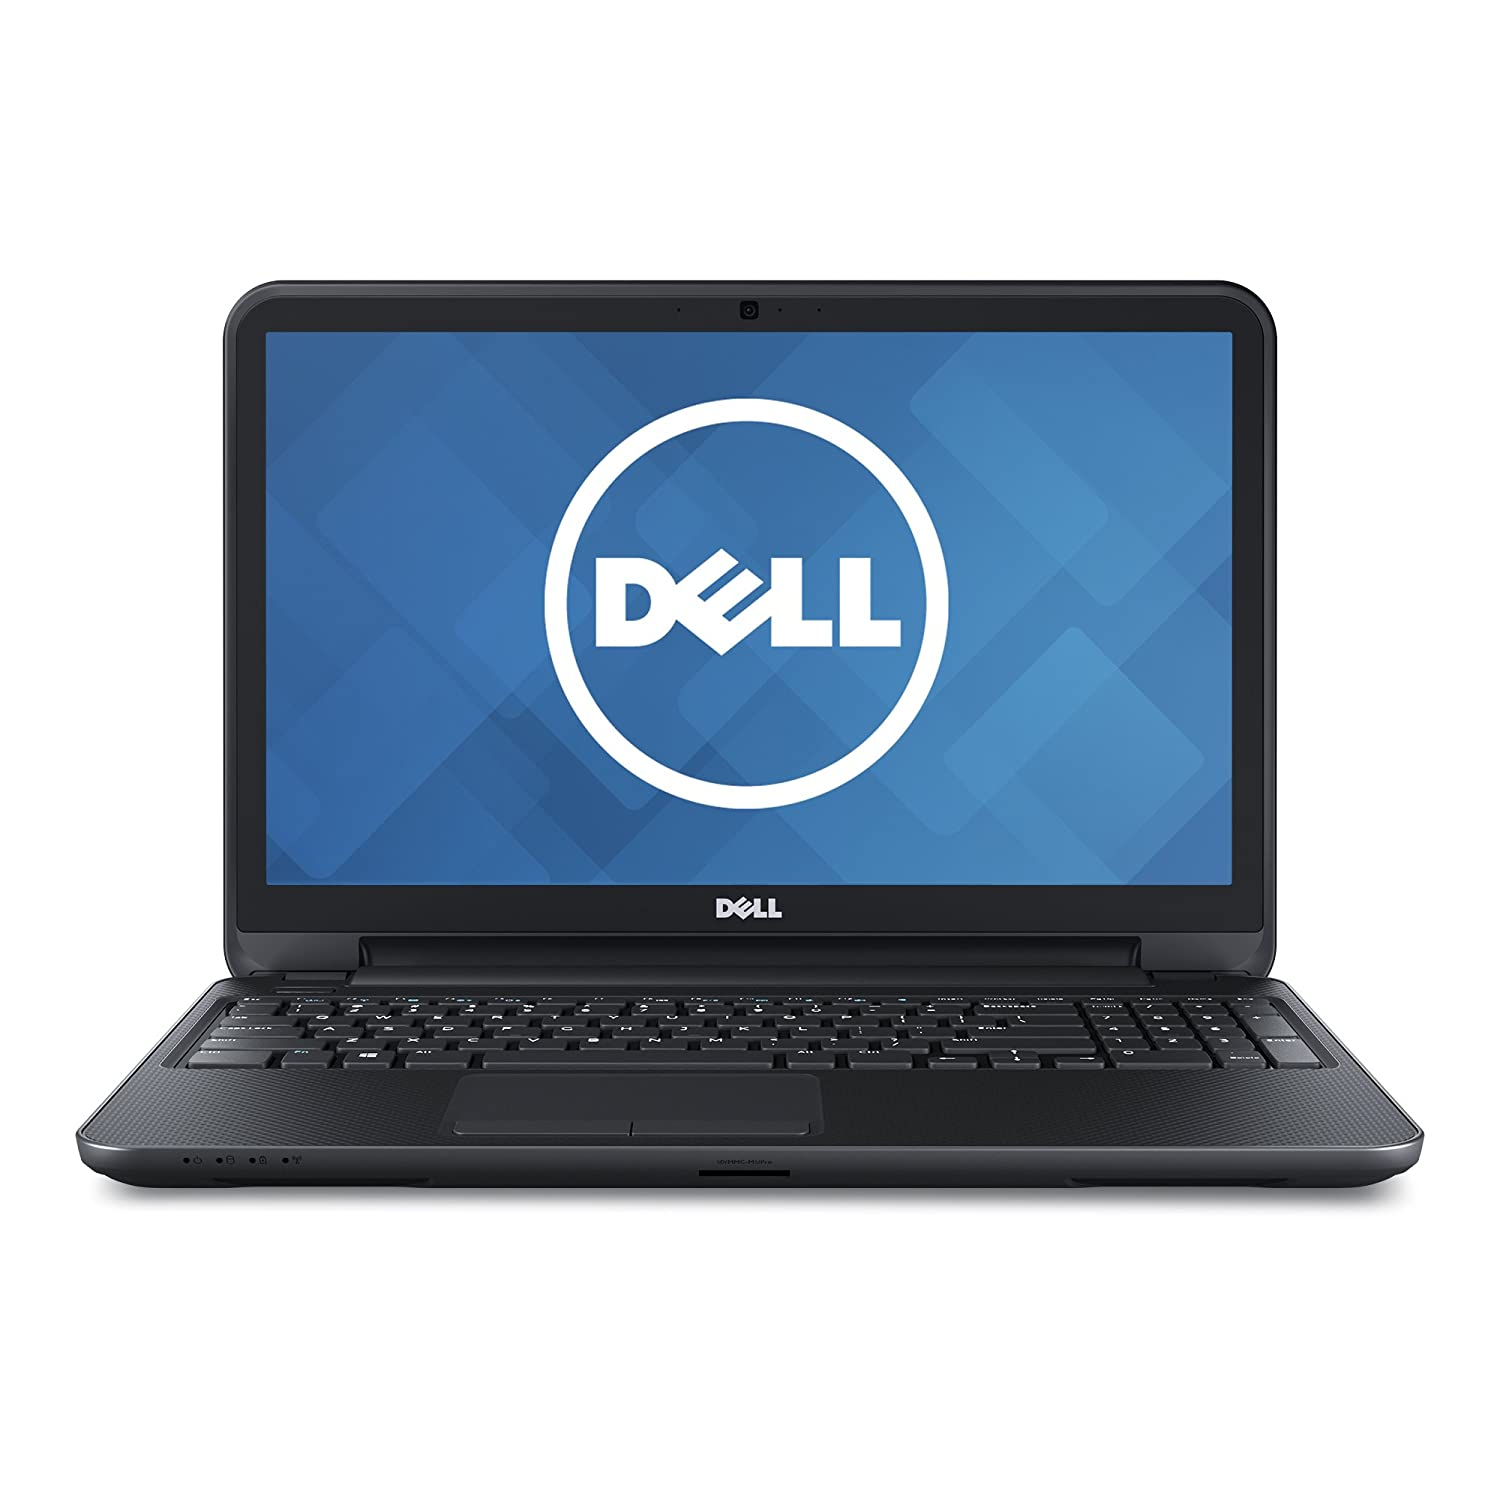 Dell Inspiron 15 Touch Screen Laptop